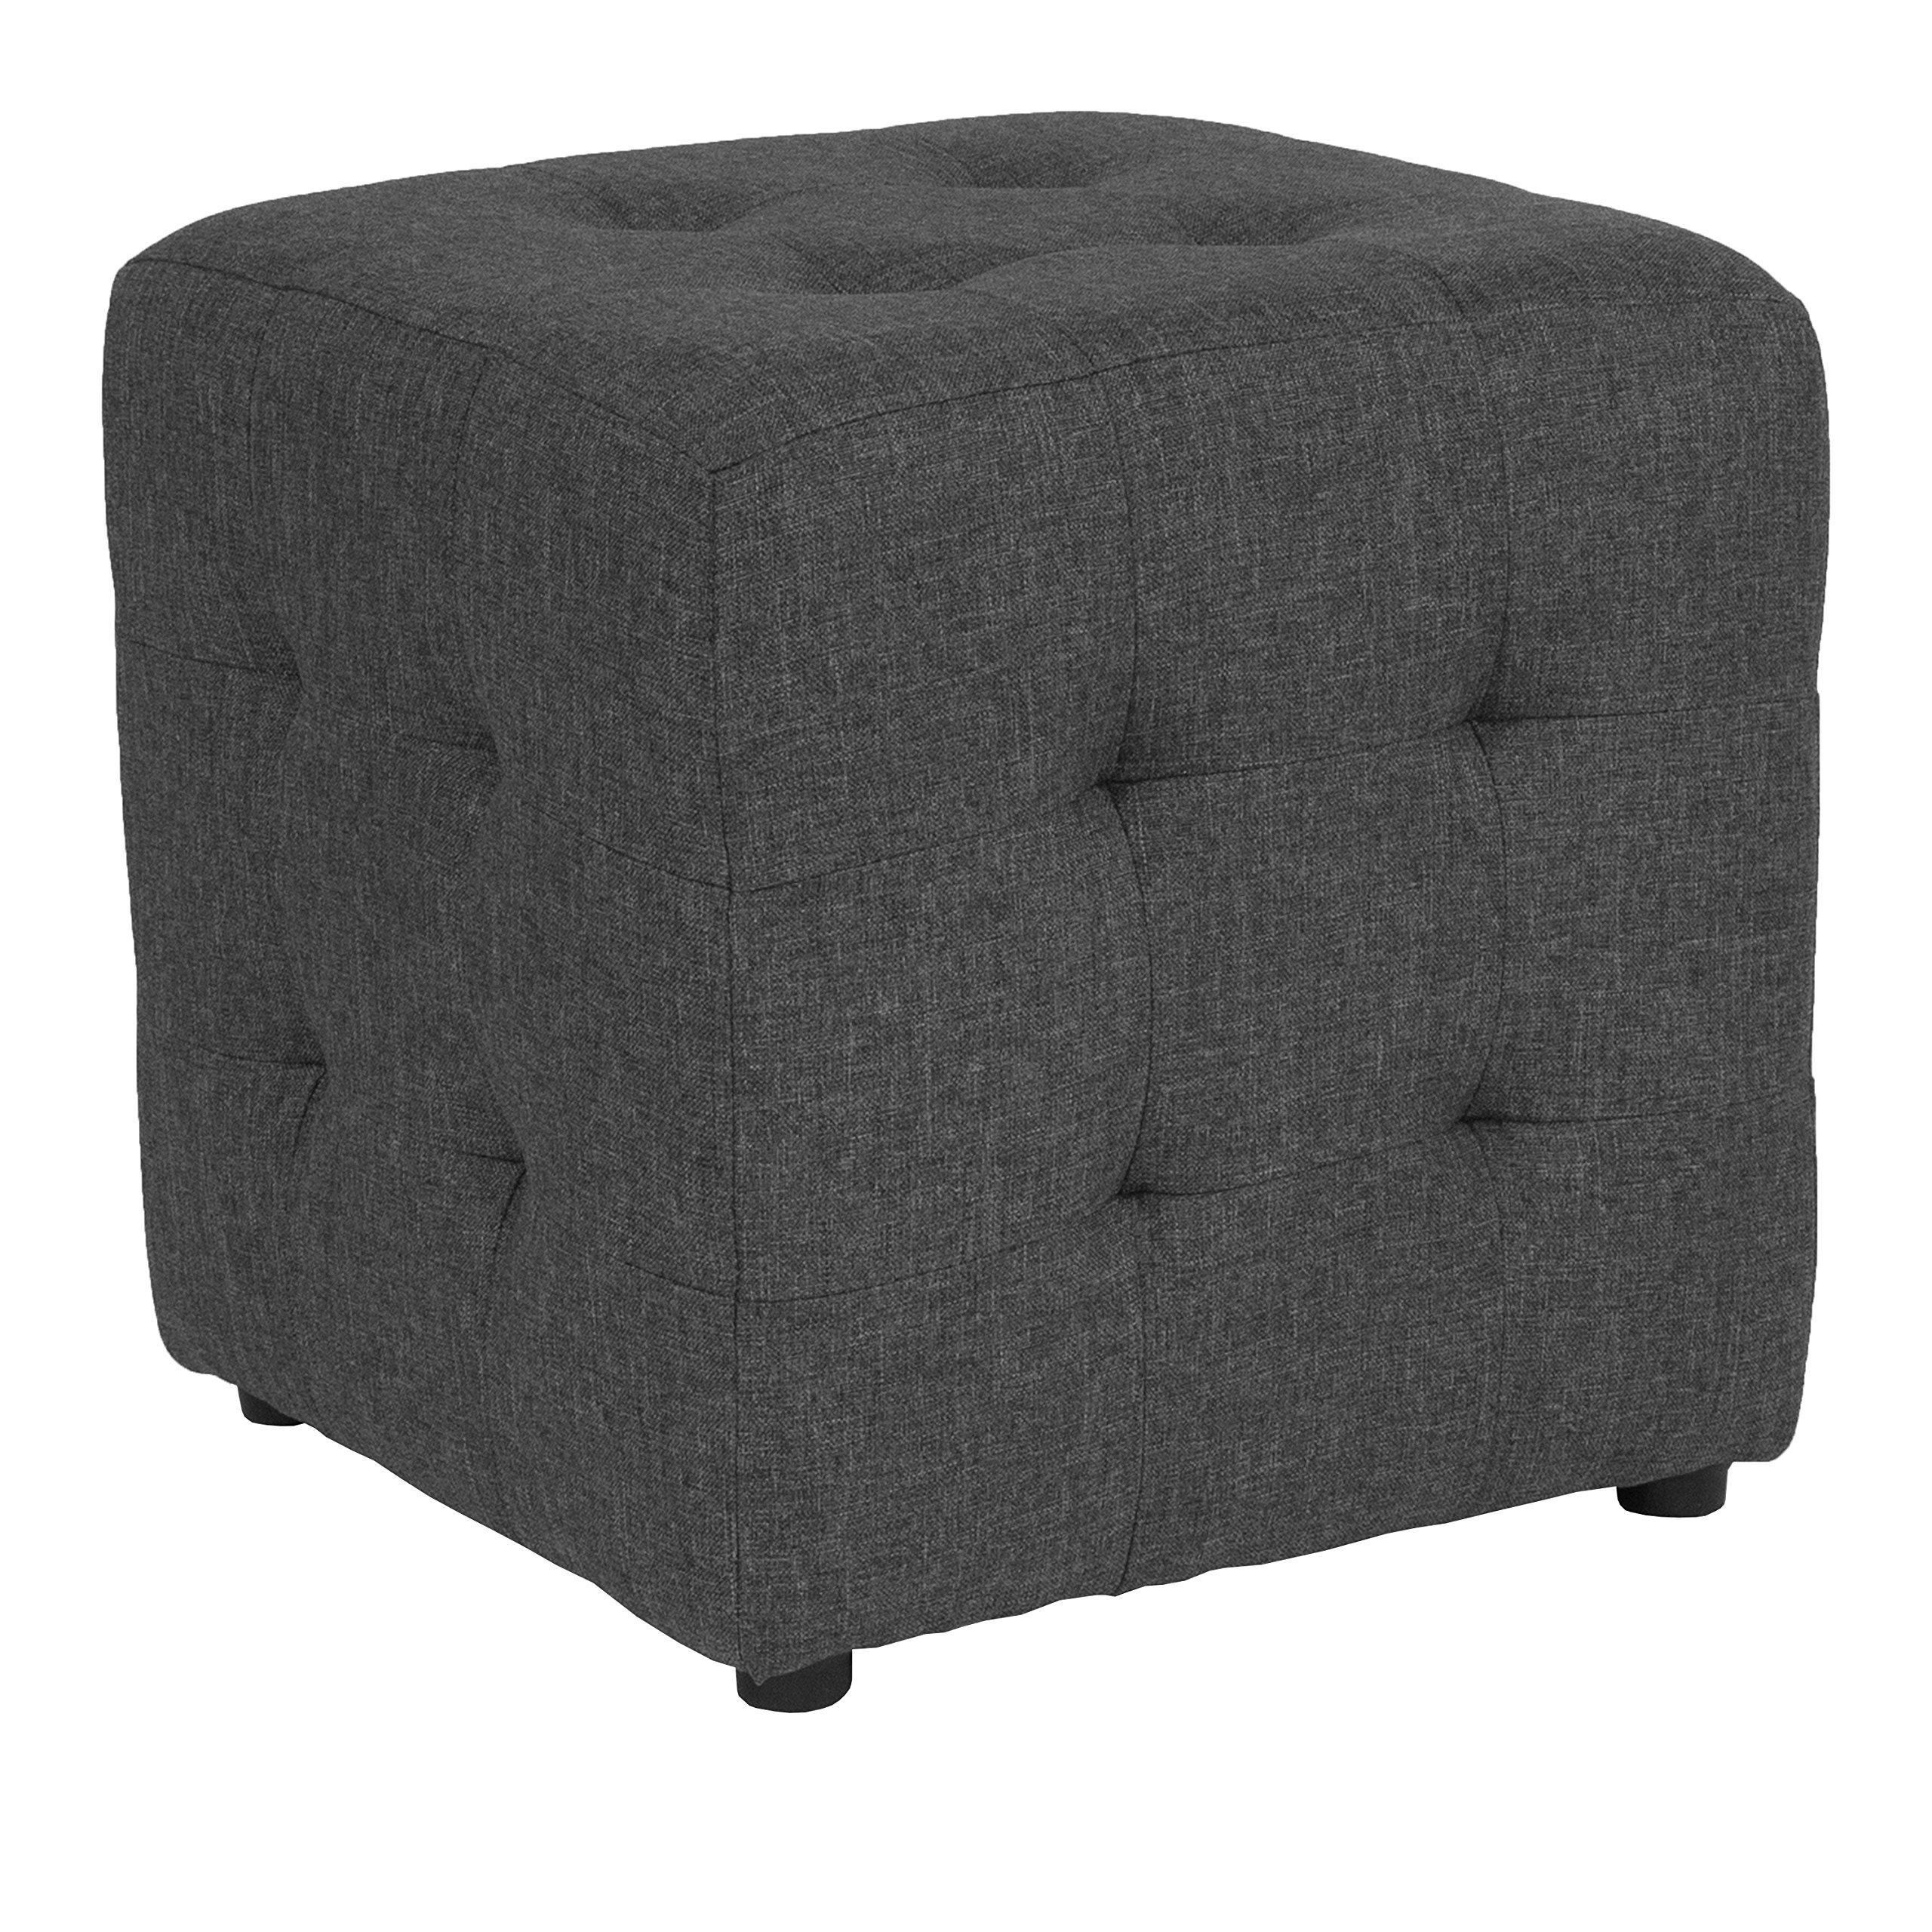 Flash Furniture Avendale Tufted Upholstered Ottoman Pouf in Dark Gray Fabric